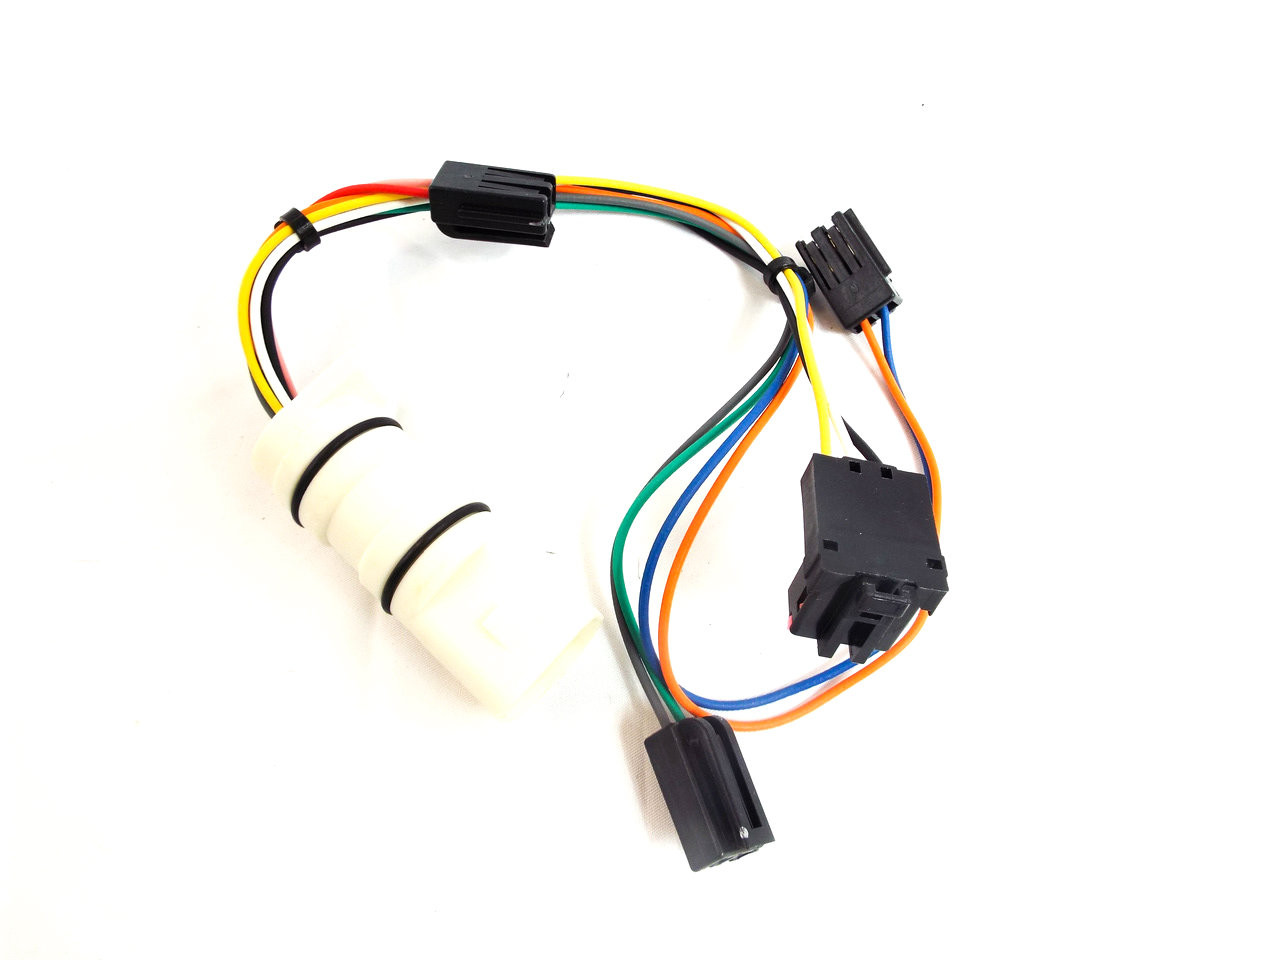 medium resolution of ford aode 4r70w internal wiring harness w case connector f2vy 7g276 aaode wiring harness 7